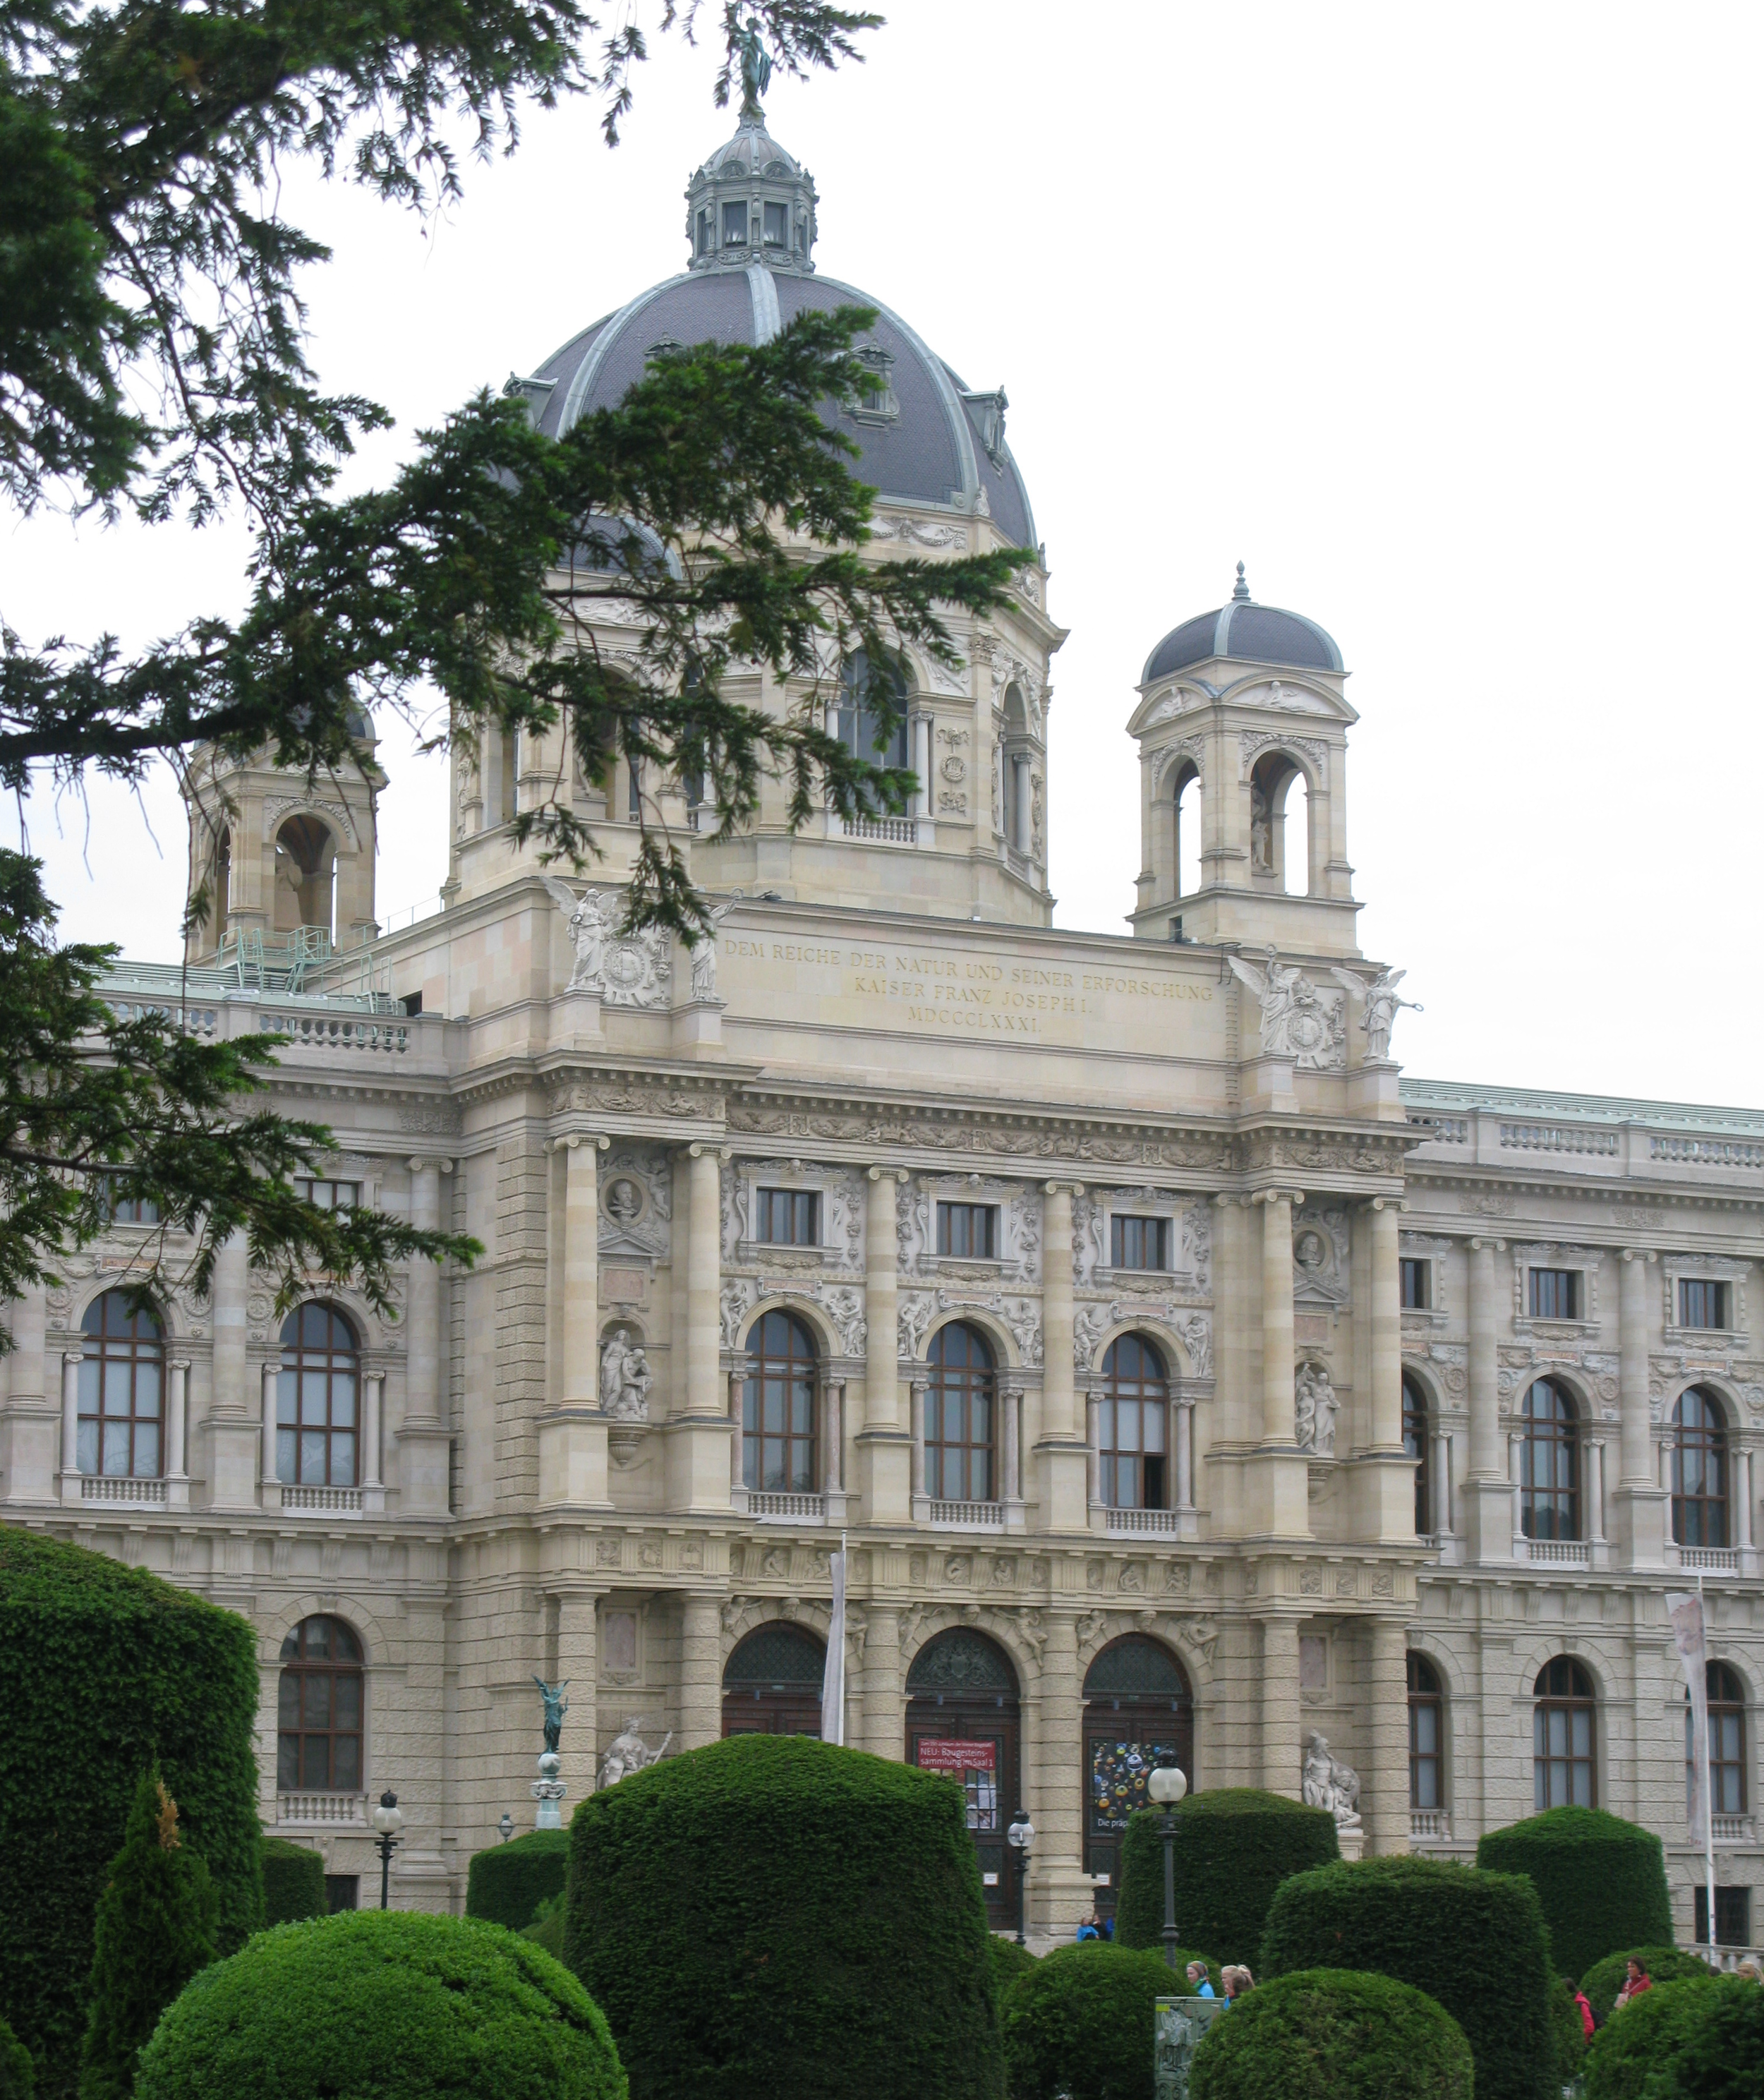 Kunsthistorisches Museum (ArtHistory Museum) and directly opposite the Natural History Museum